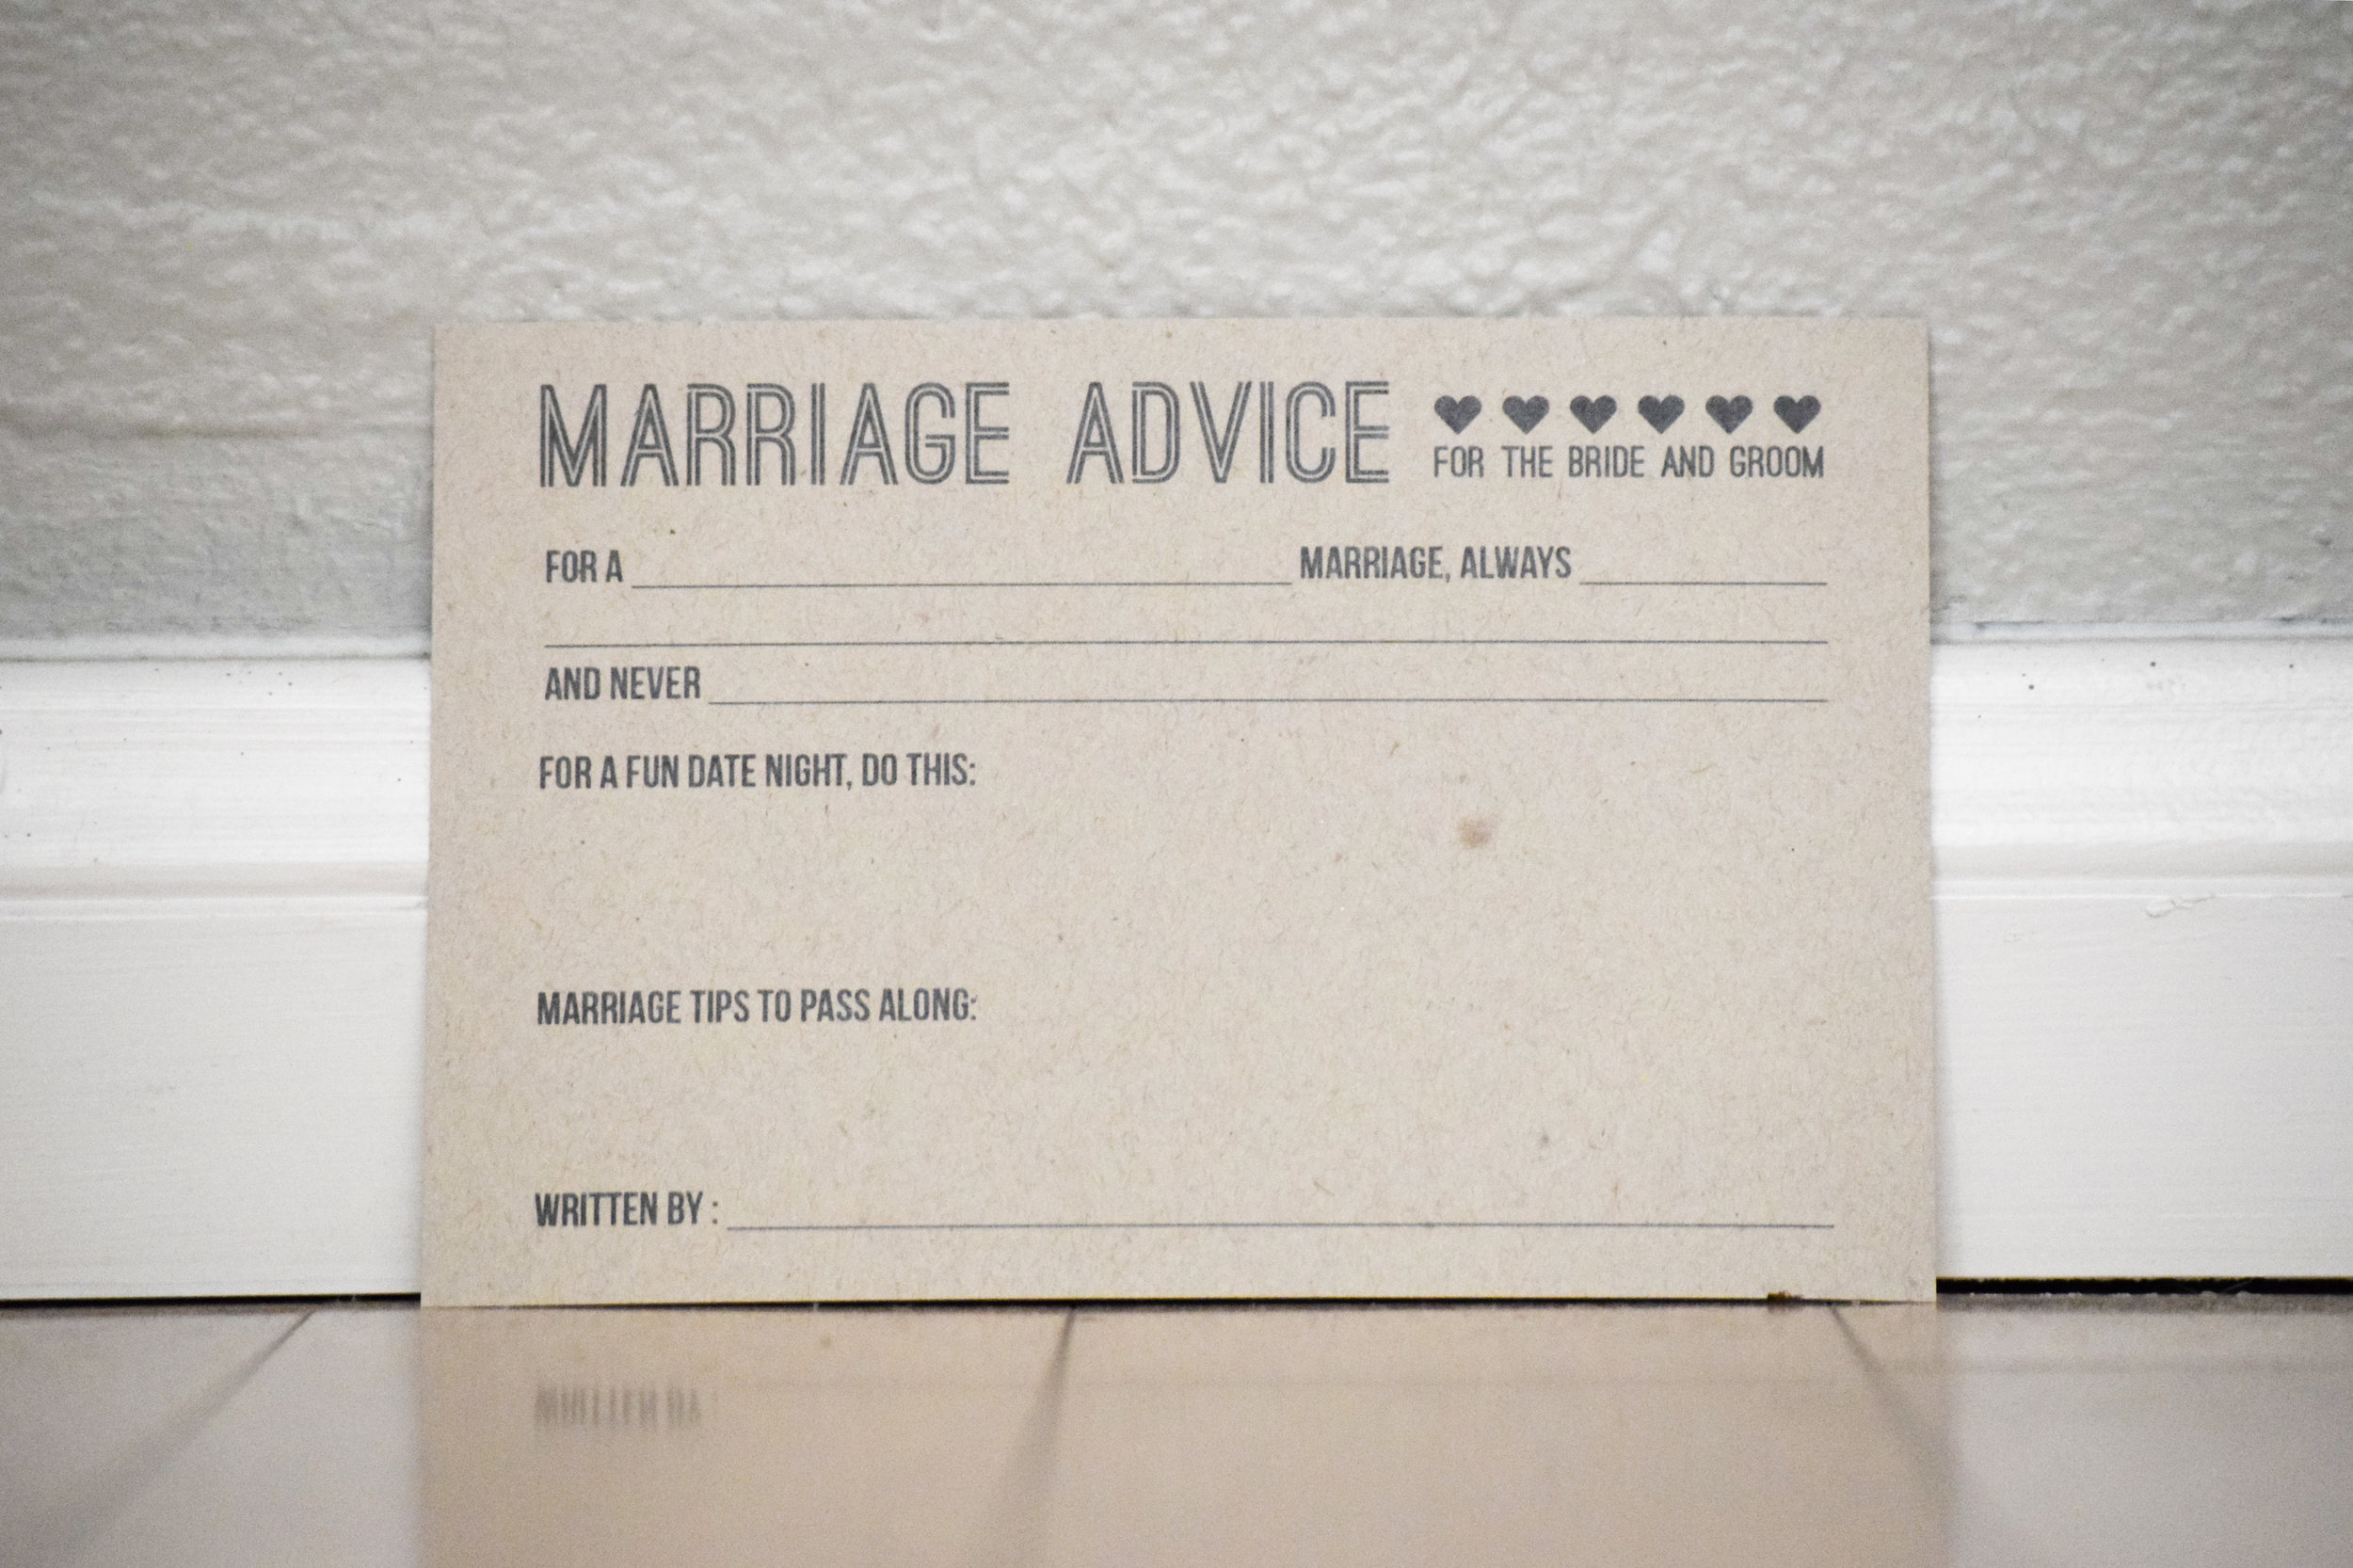 wedding advice cards, advice for the bride and groom - guest book alternative